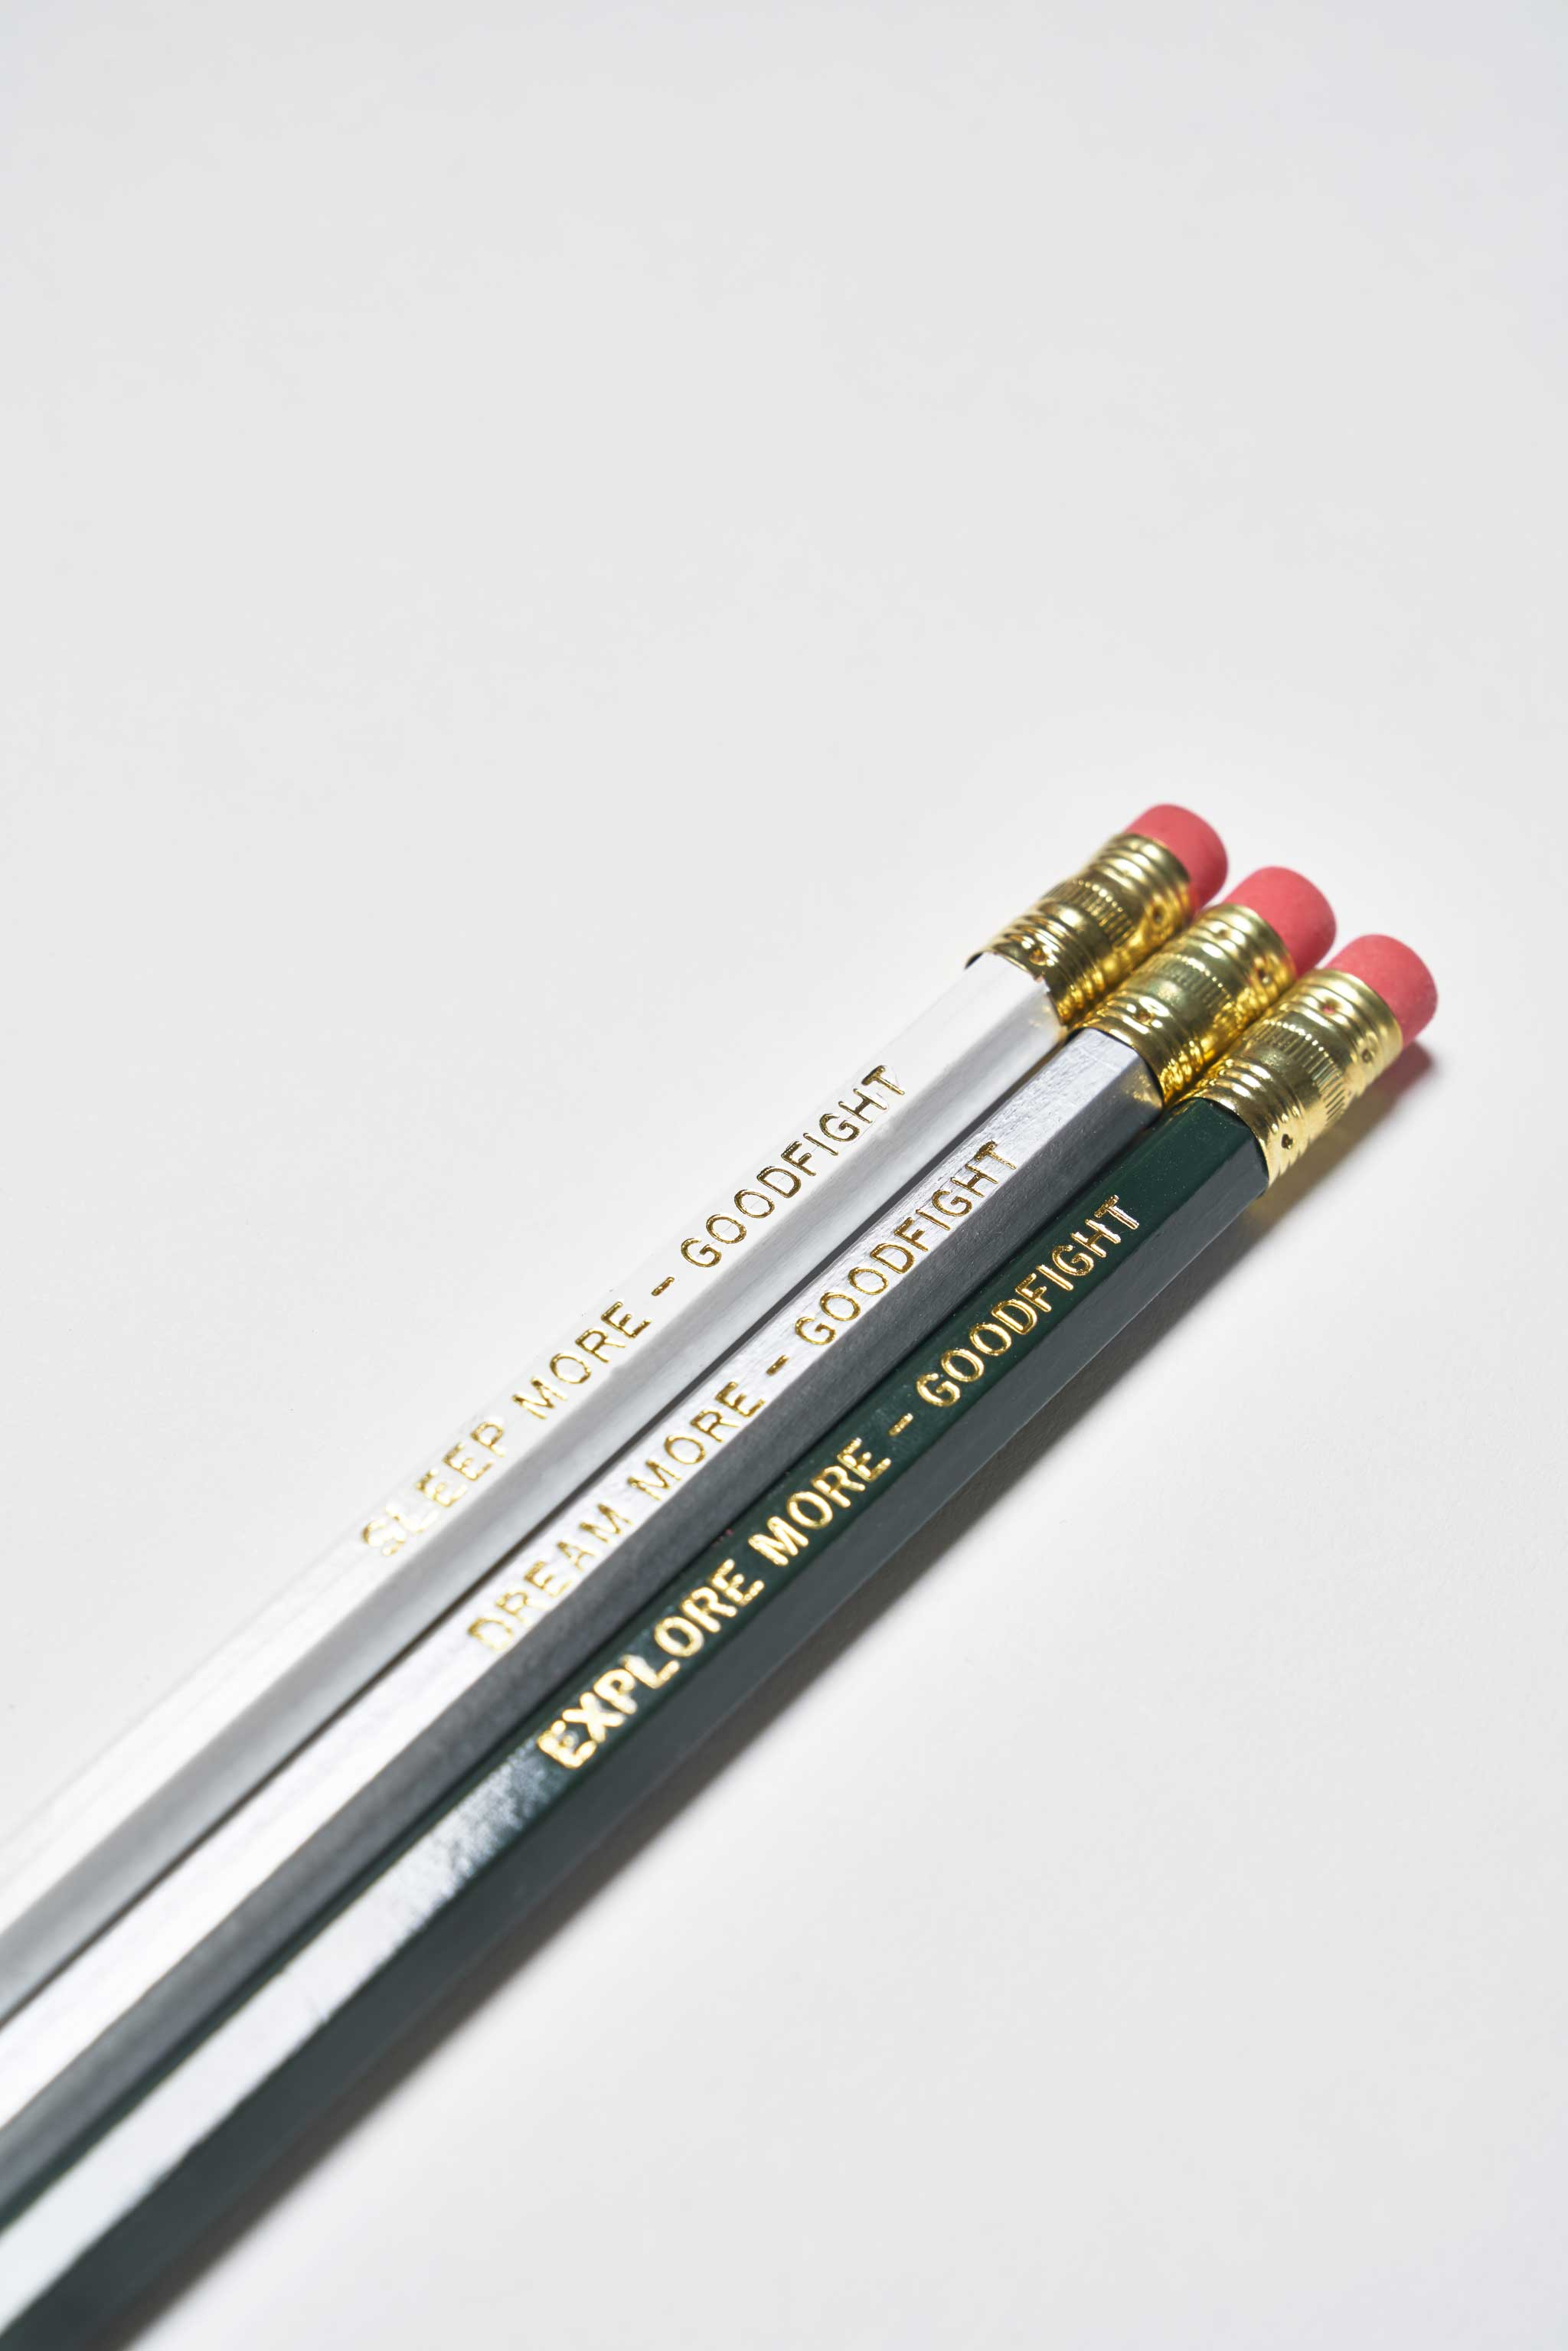 Goodfight Sleep Dream Explore Pencil Set